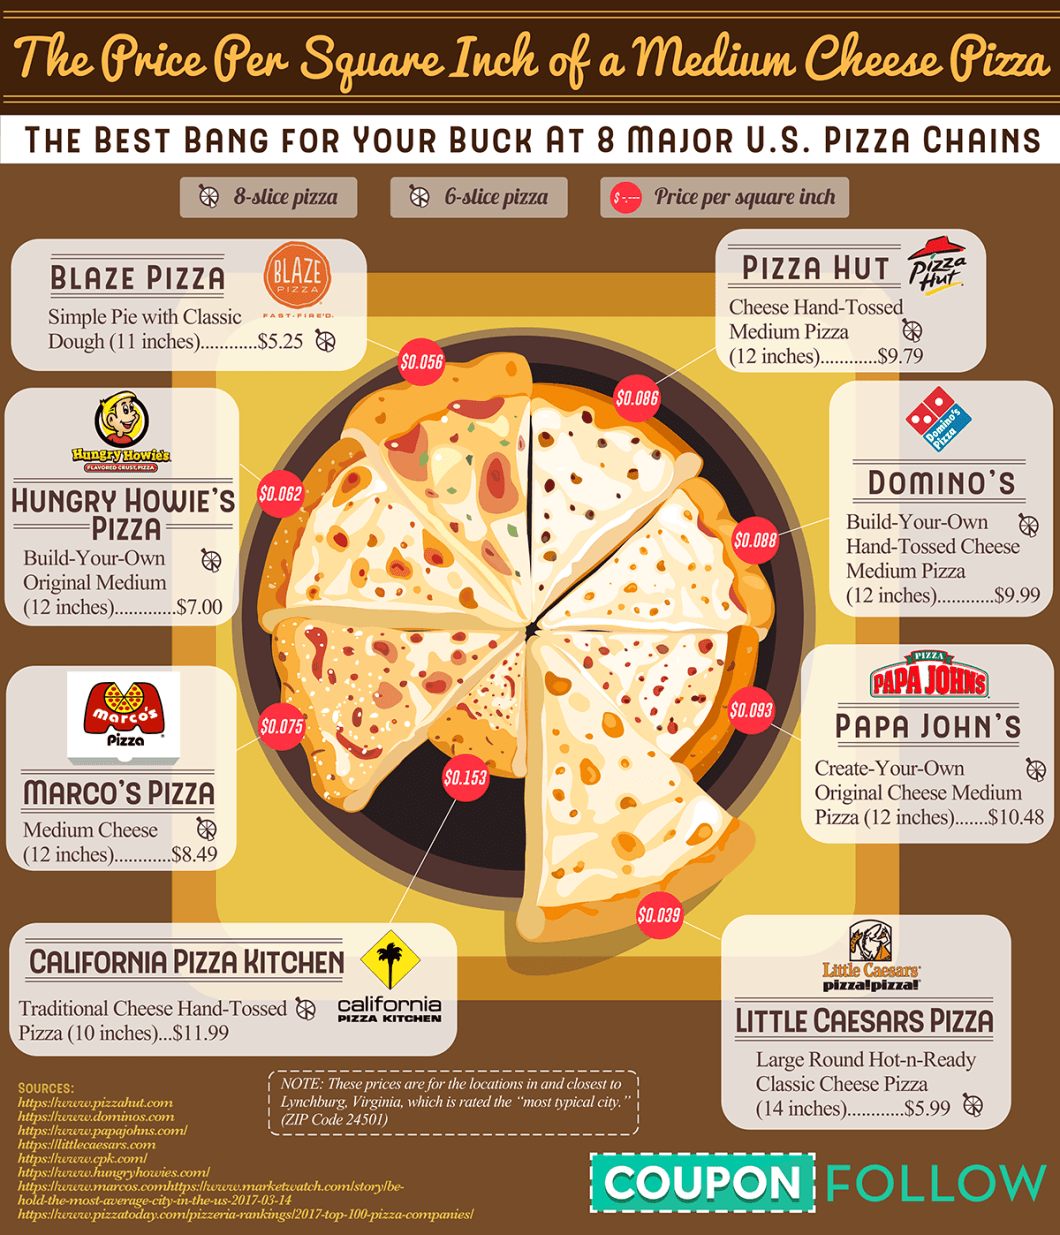 If Pizza Were Real Estate: The Price Americans Pay Per Square Inch for Pizza! - Infographic